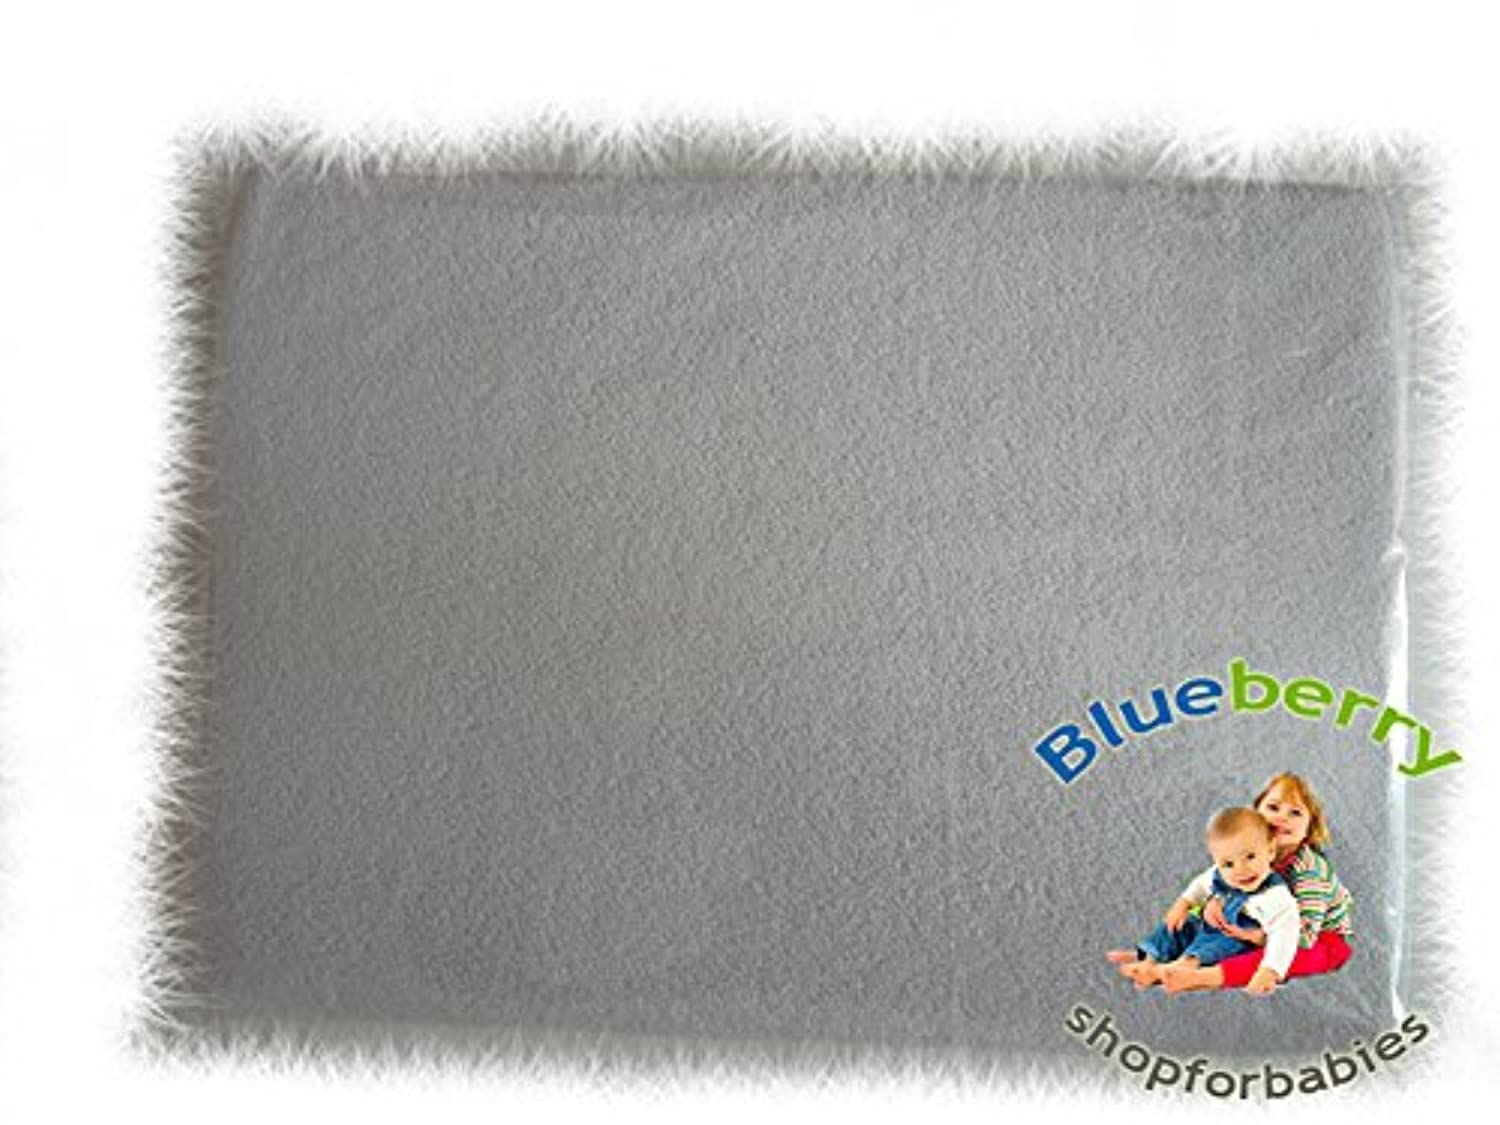 BlueberryShop 2x TERRY TOWELLING FITTED SHEET TODDLER BED BABY COTBED 60 X 120 cm (23,5